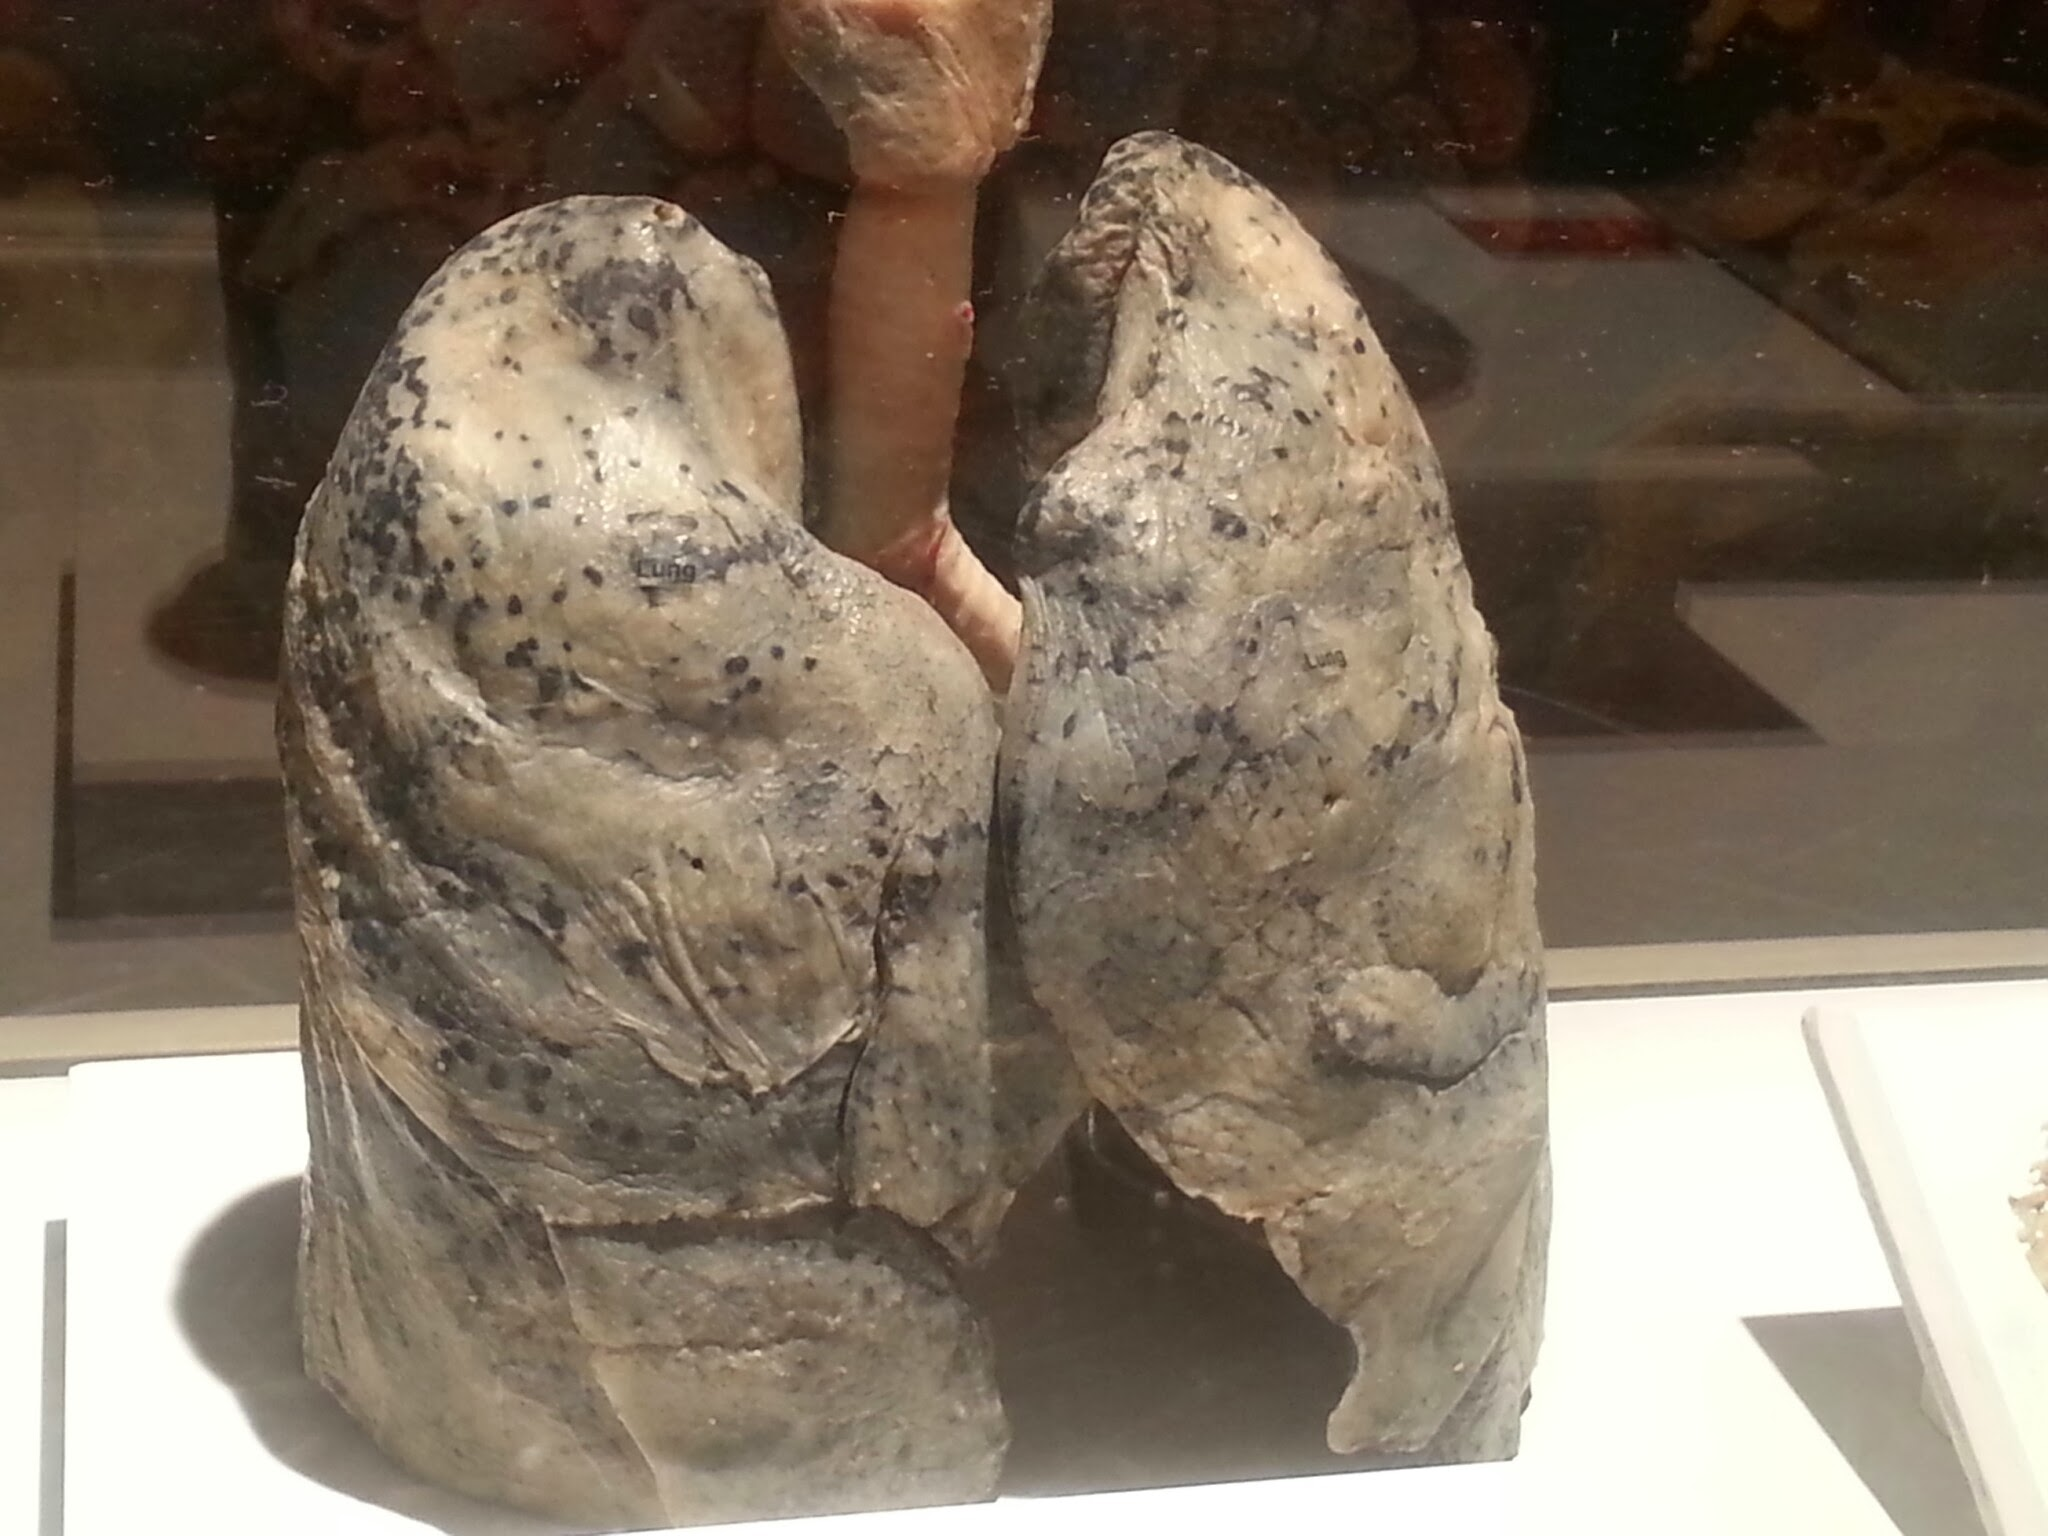 Healthy Lungs – Dani's Decadent Deals